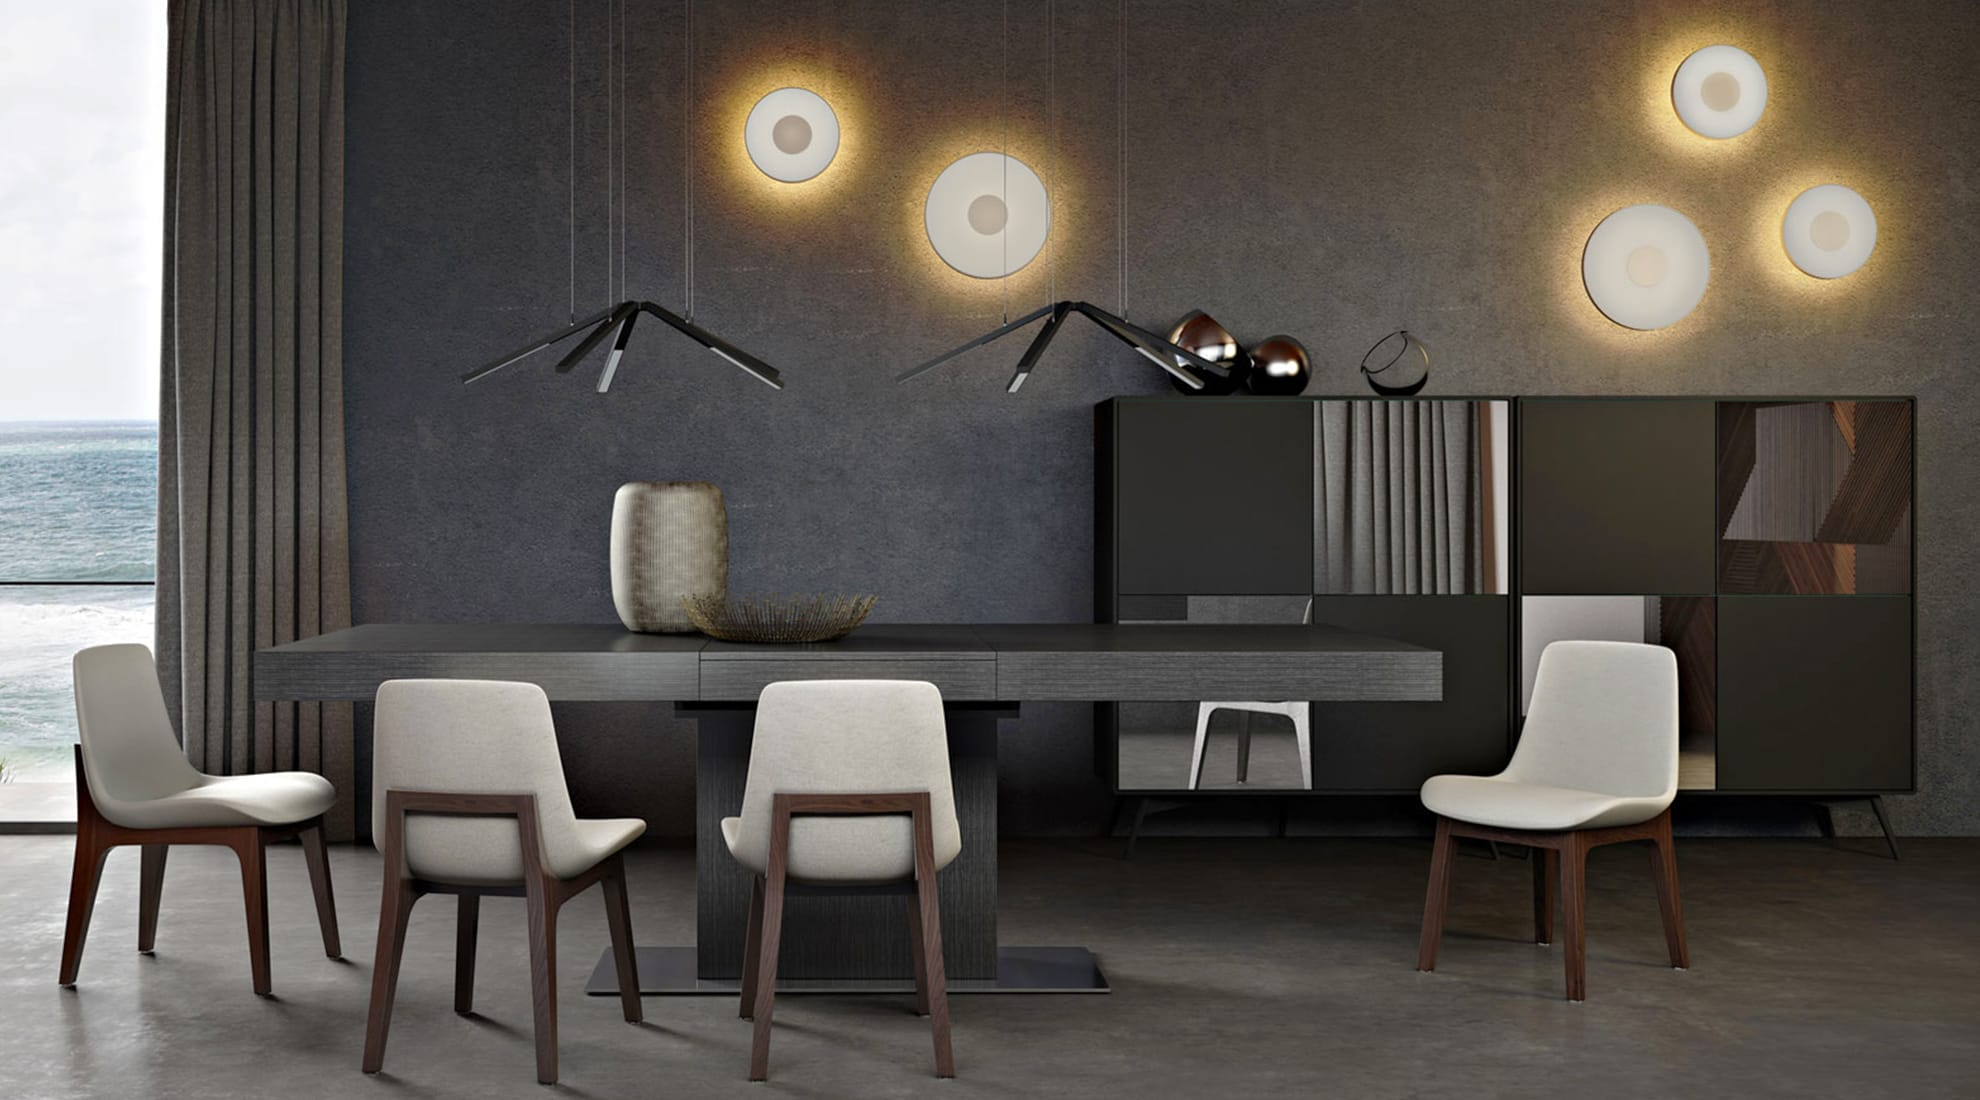 Astor Dining Table by Modloft and Thor Light by Studio Italia Design